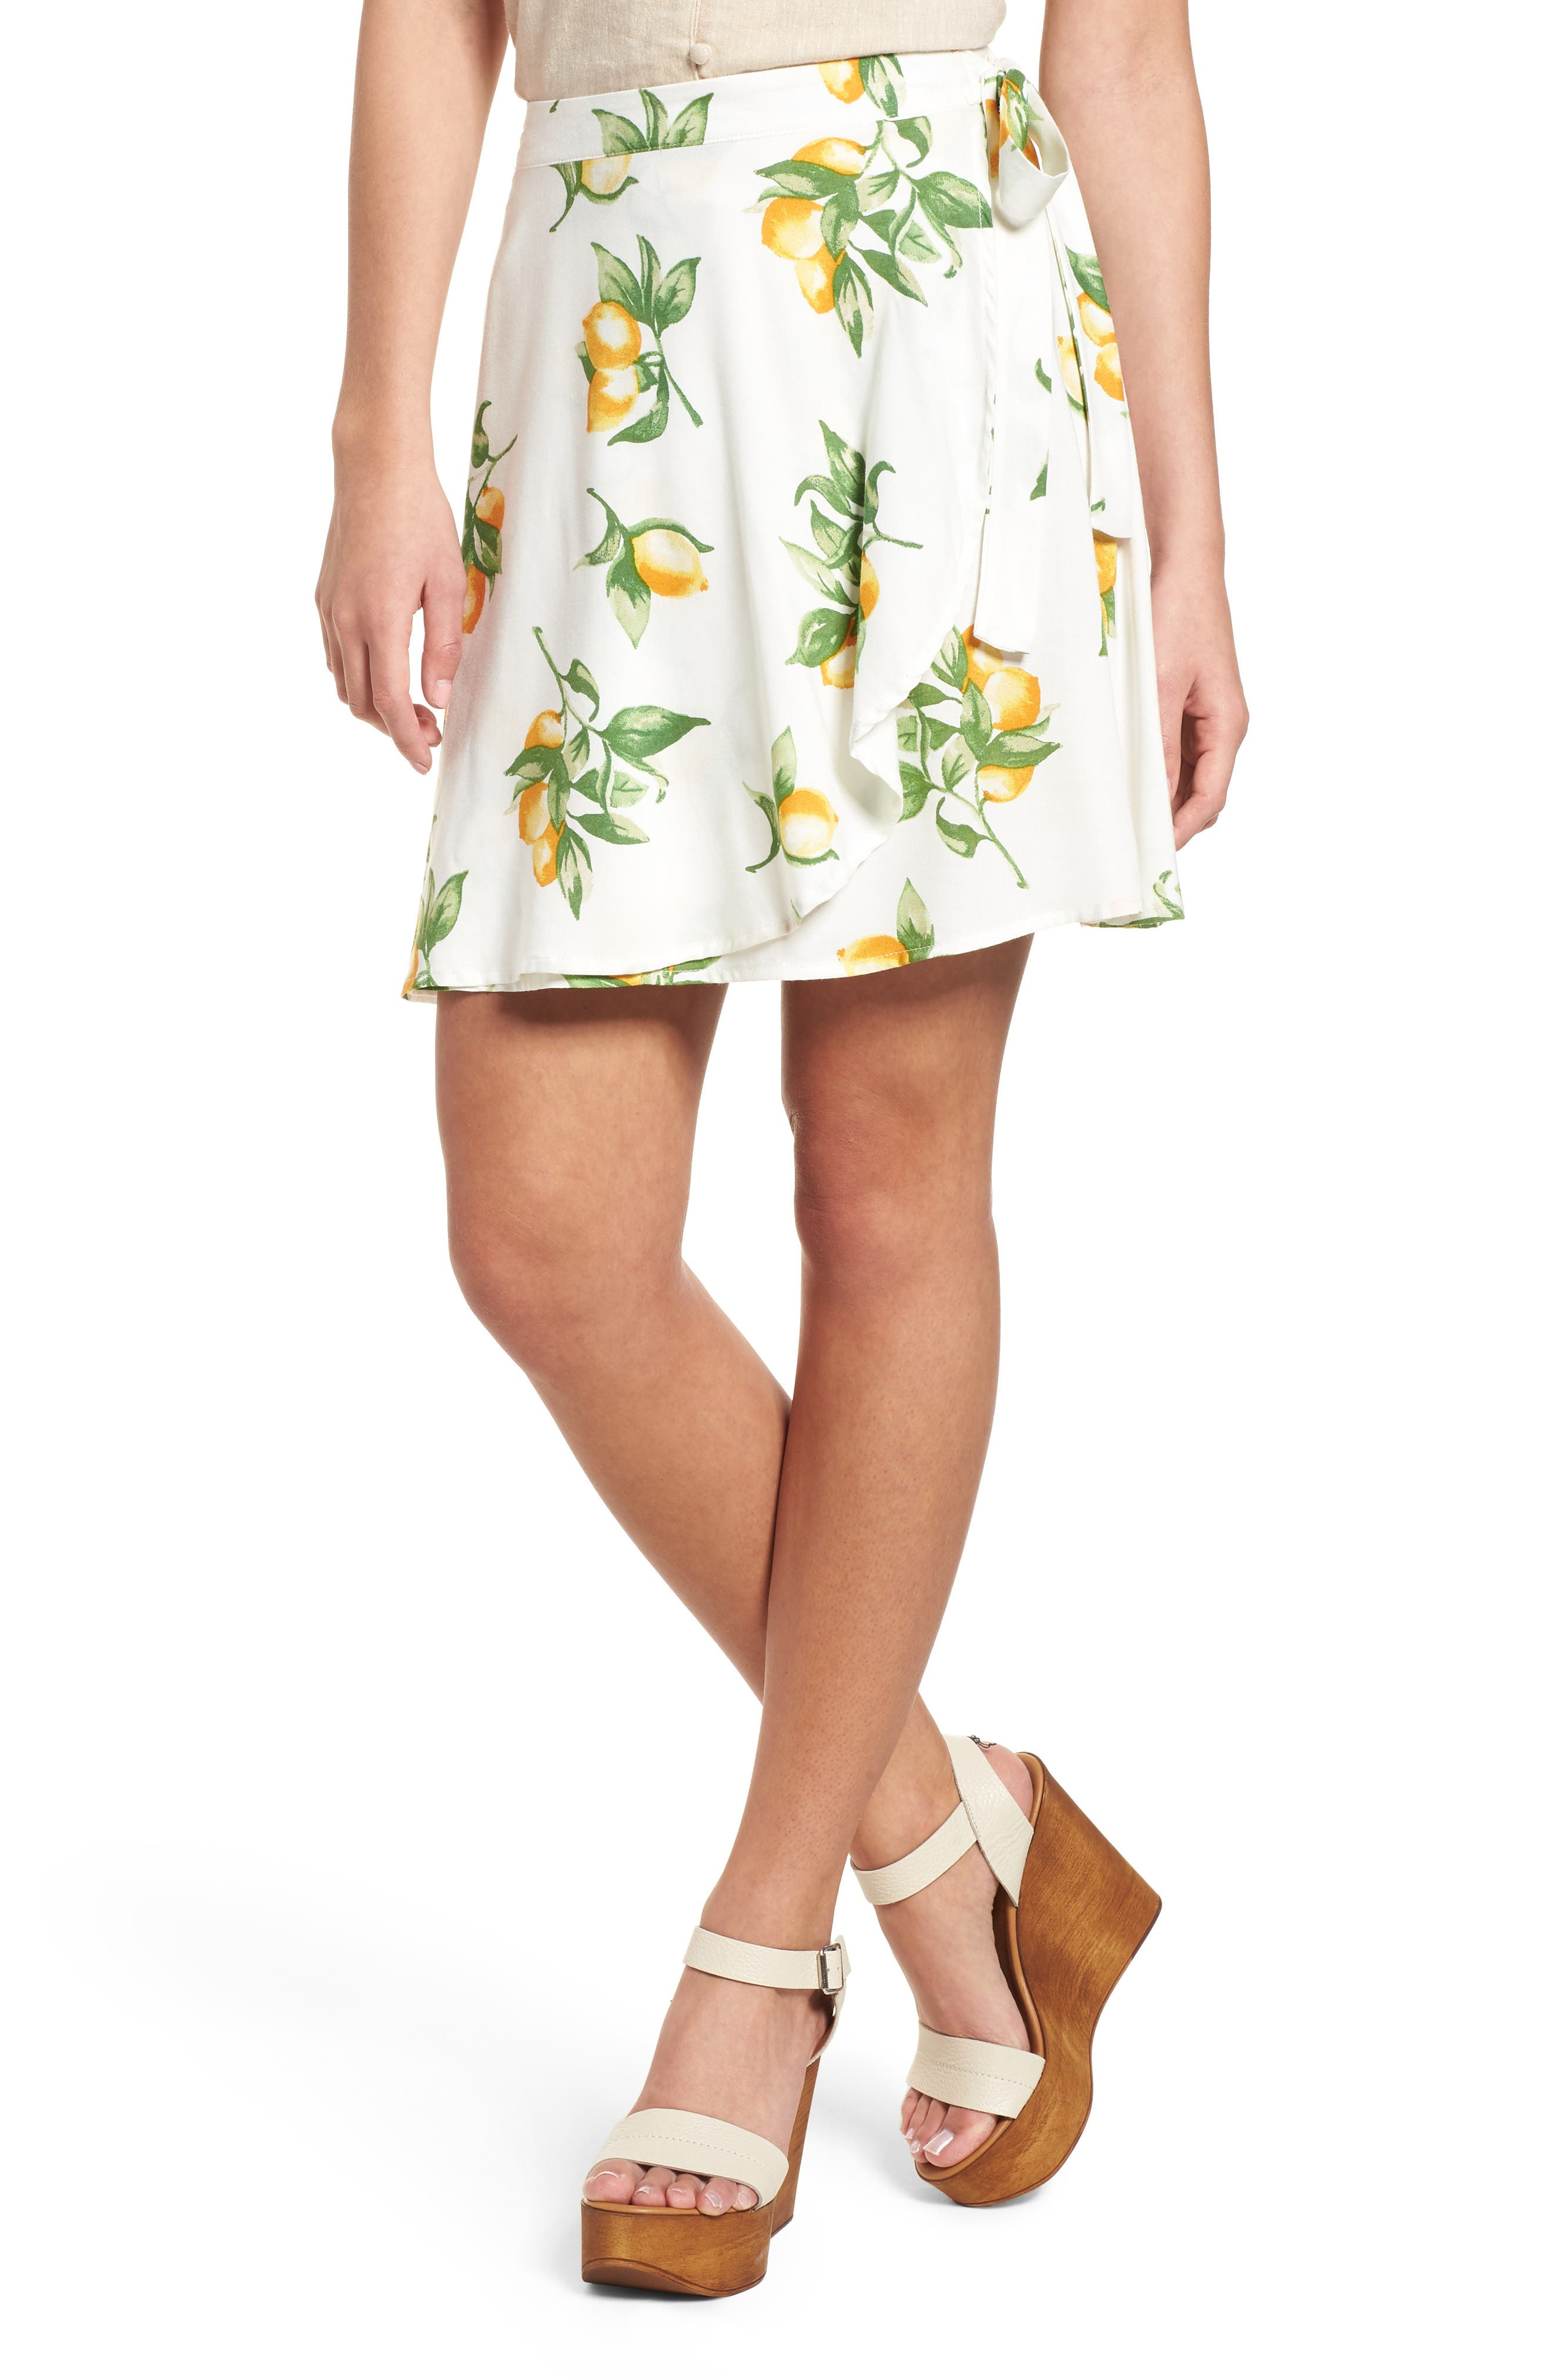 Mimi Chica Fruit Print Side Tie Skirt